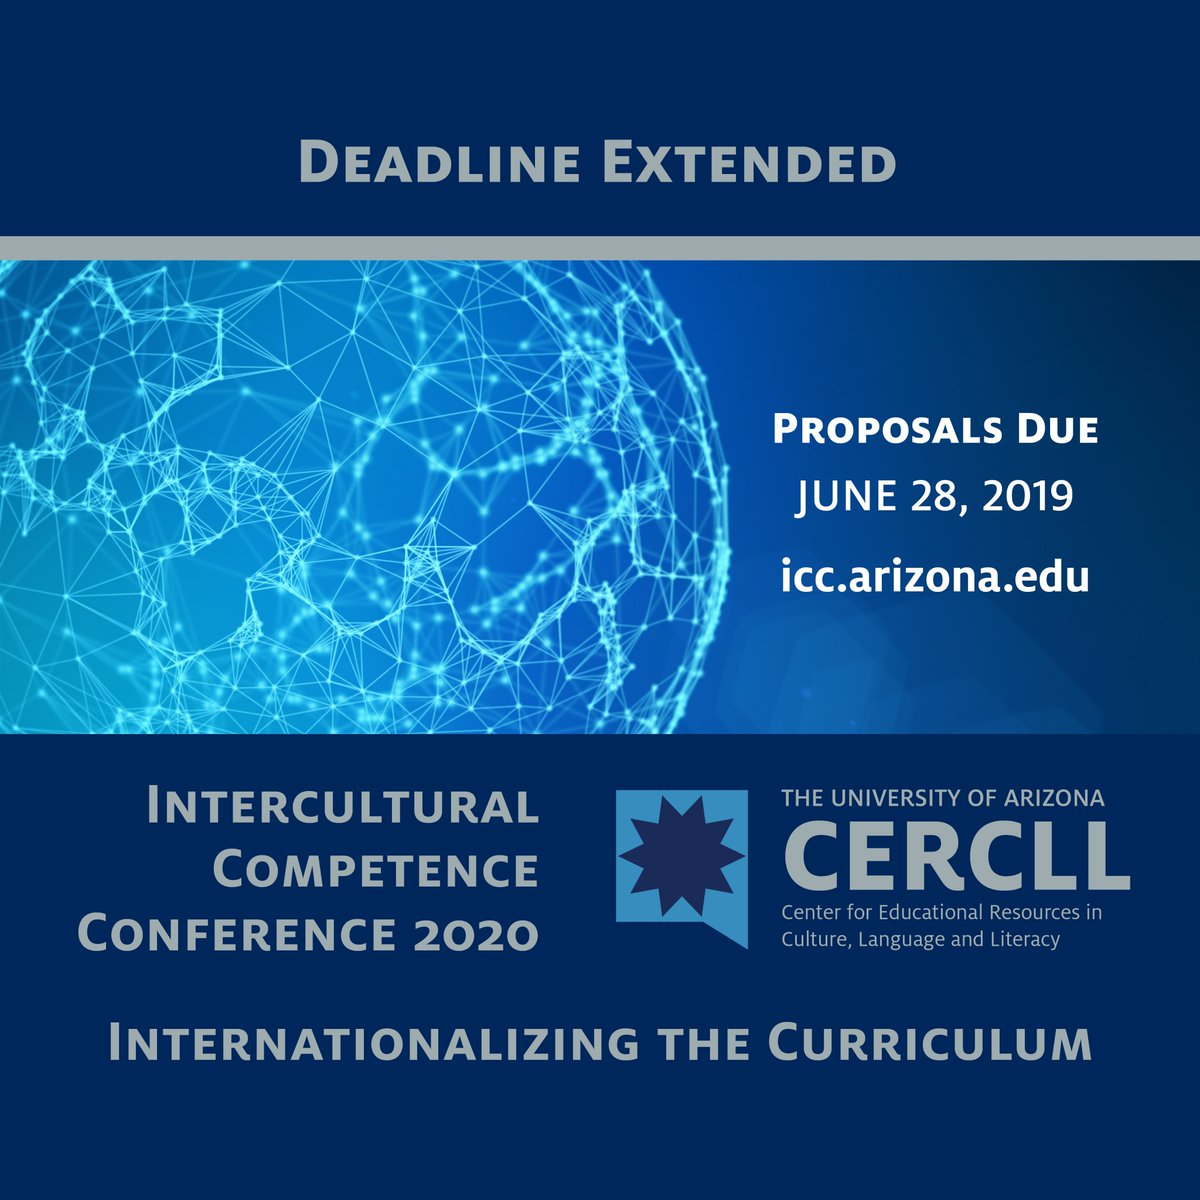 Trends In Education 2020.Cercll Uofa On Twitter 𝗜𝗖𝗖 𝟮𝟬𝟮𝟬 𝗽𝗿𝗼𝗽𝗼𝘀𝗮𝗹